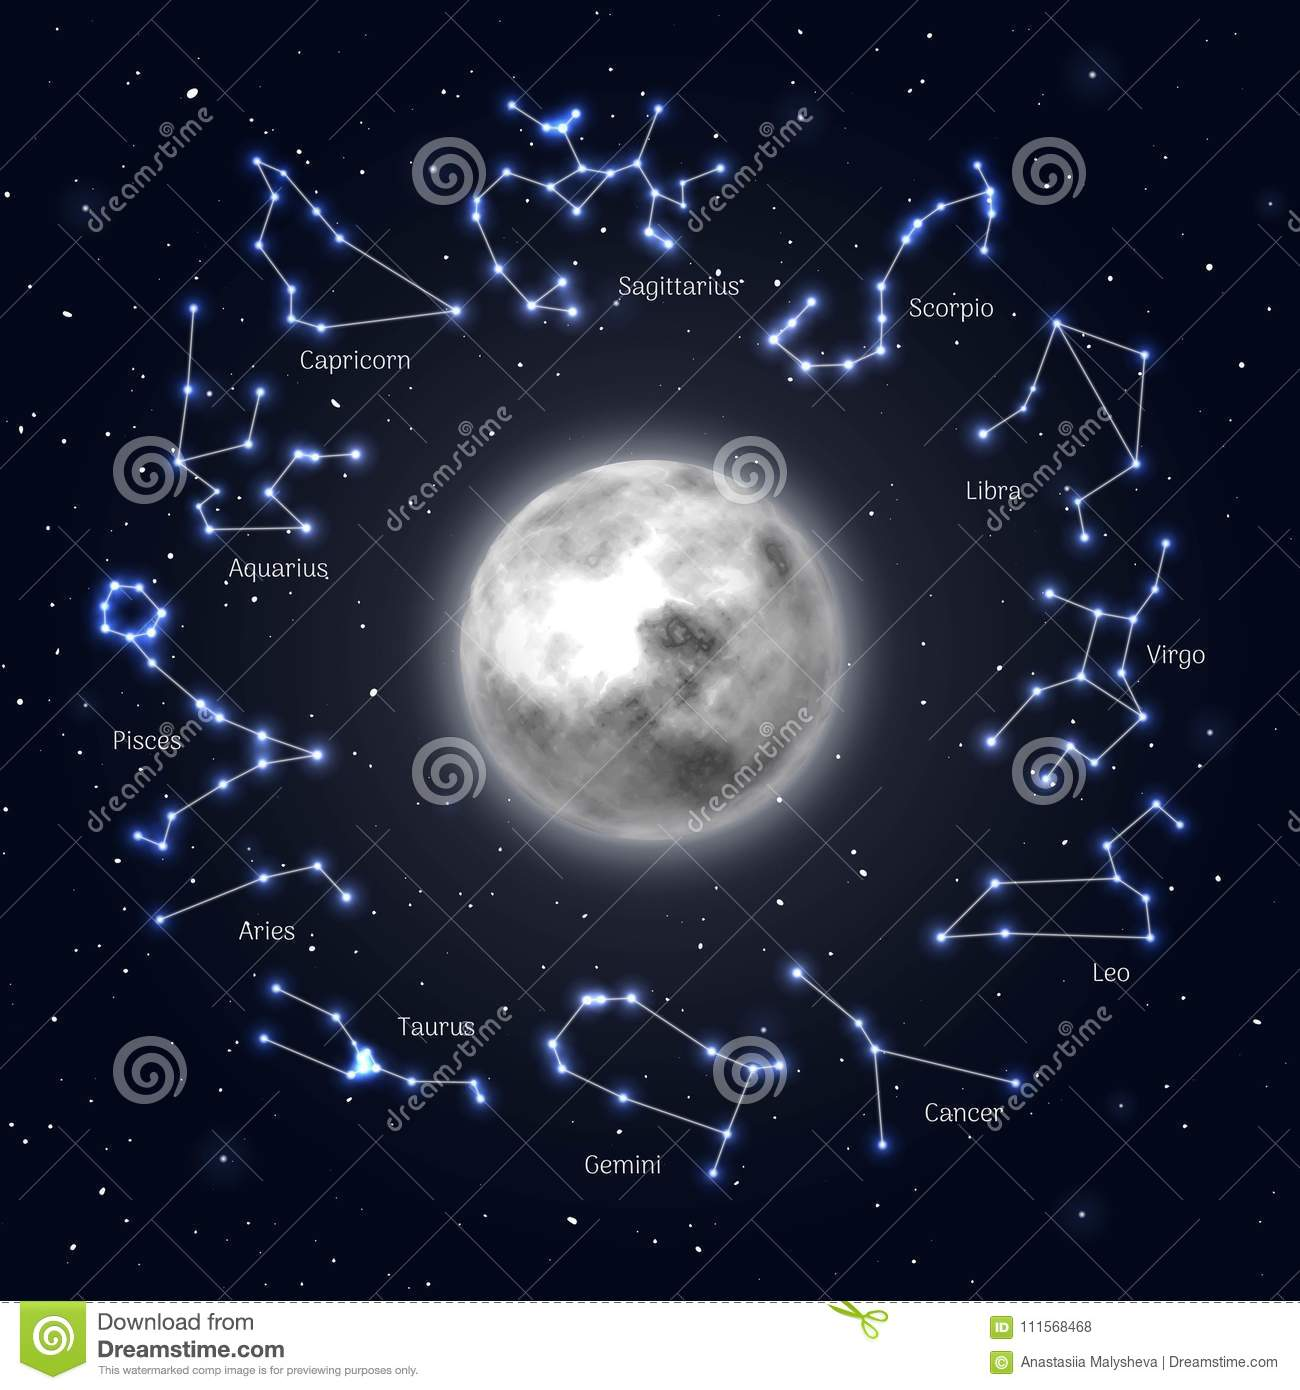 moon surrounded zodiac signs night sky background realistic stock